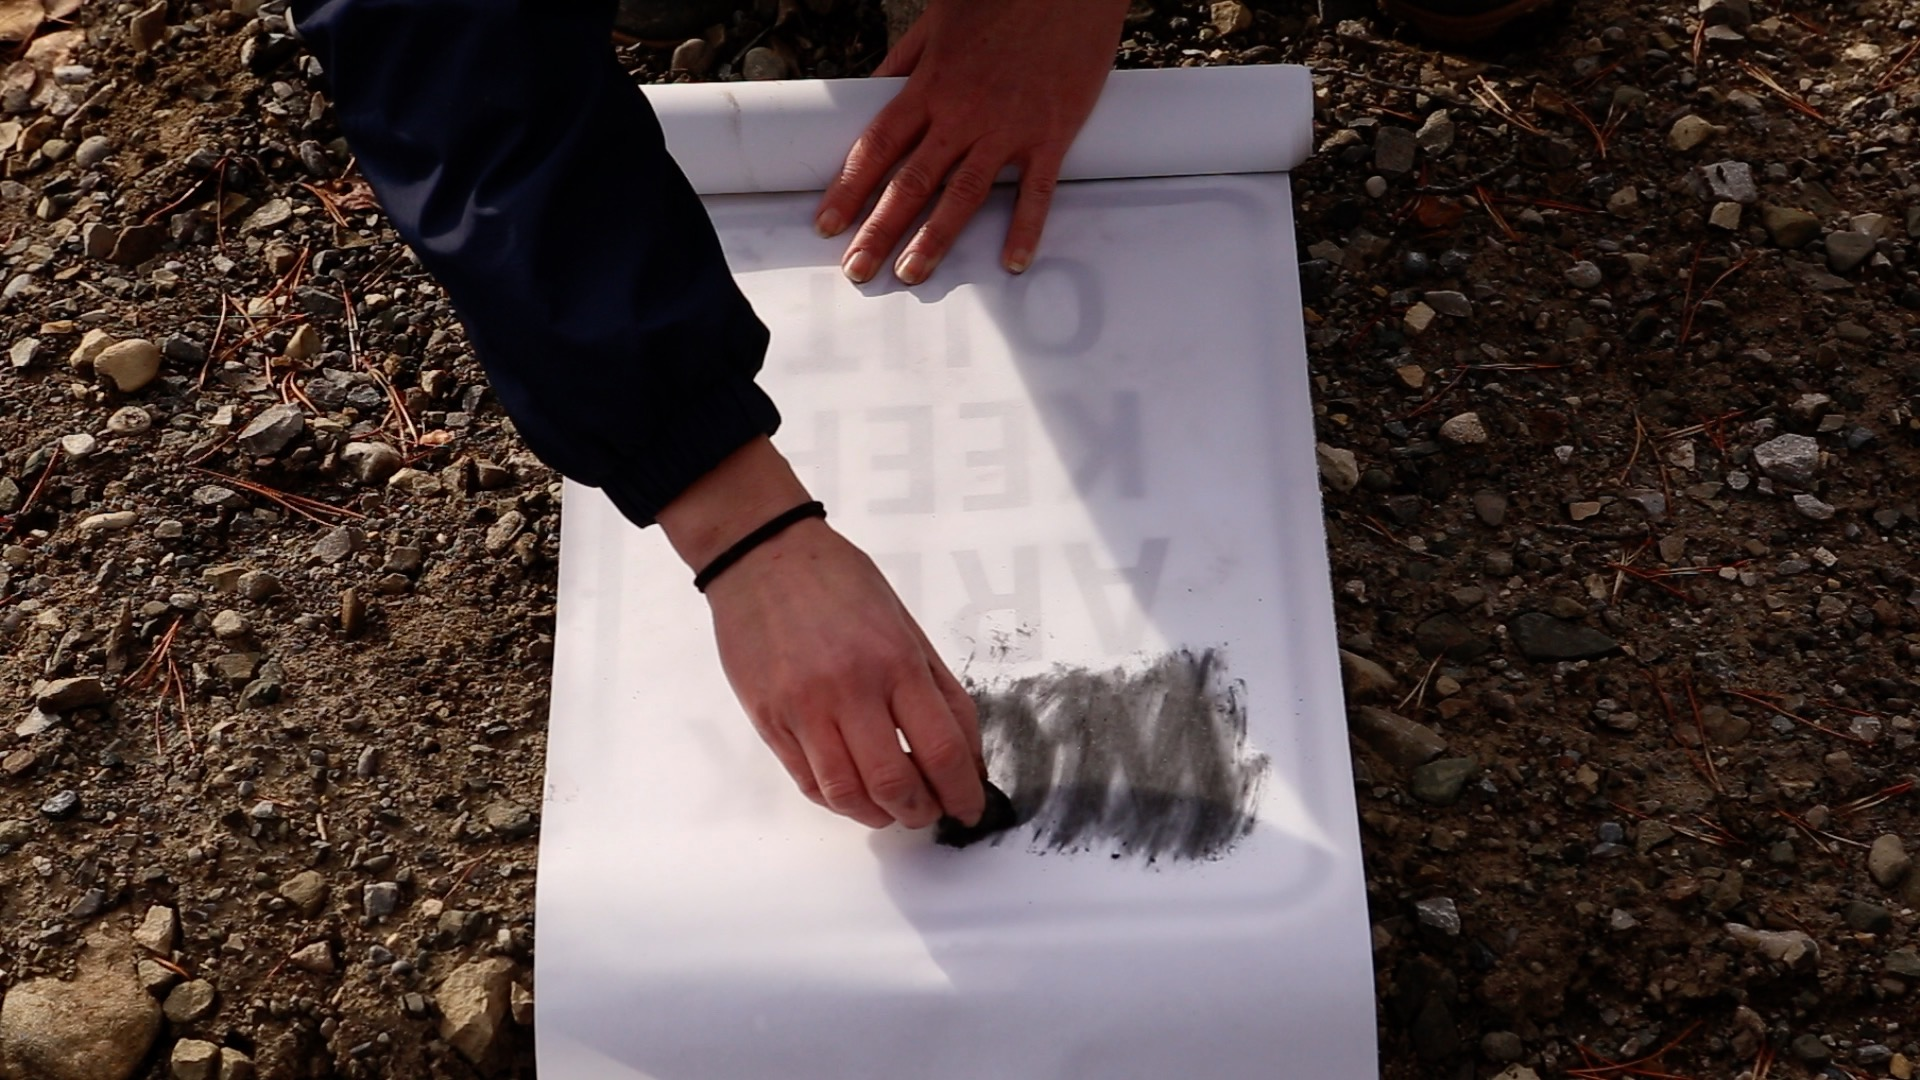 Artist at Work, Grassy Mountain Road, Rubbing #1, 2020. Charcoal on vellum, 73.66 x 45.72 cm. Photo: Courtesy the artist.